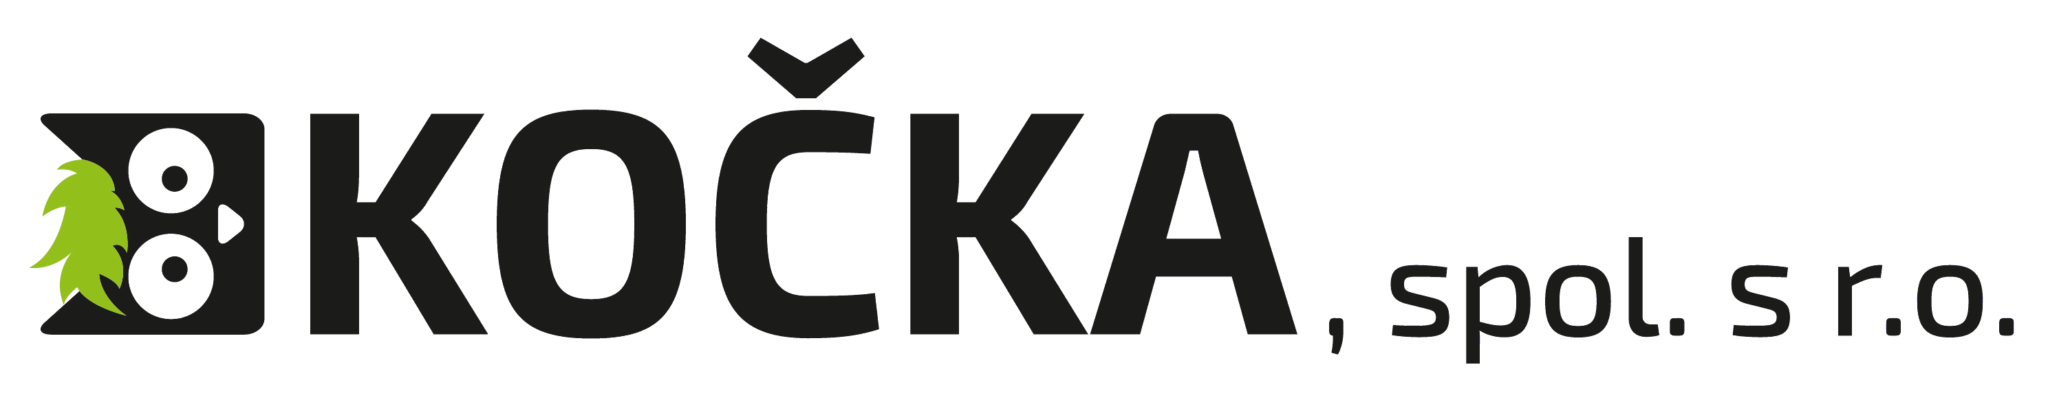 logo-kocka-transparent